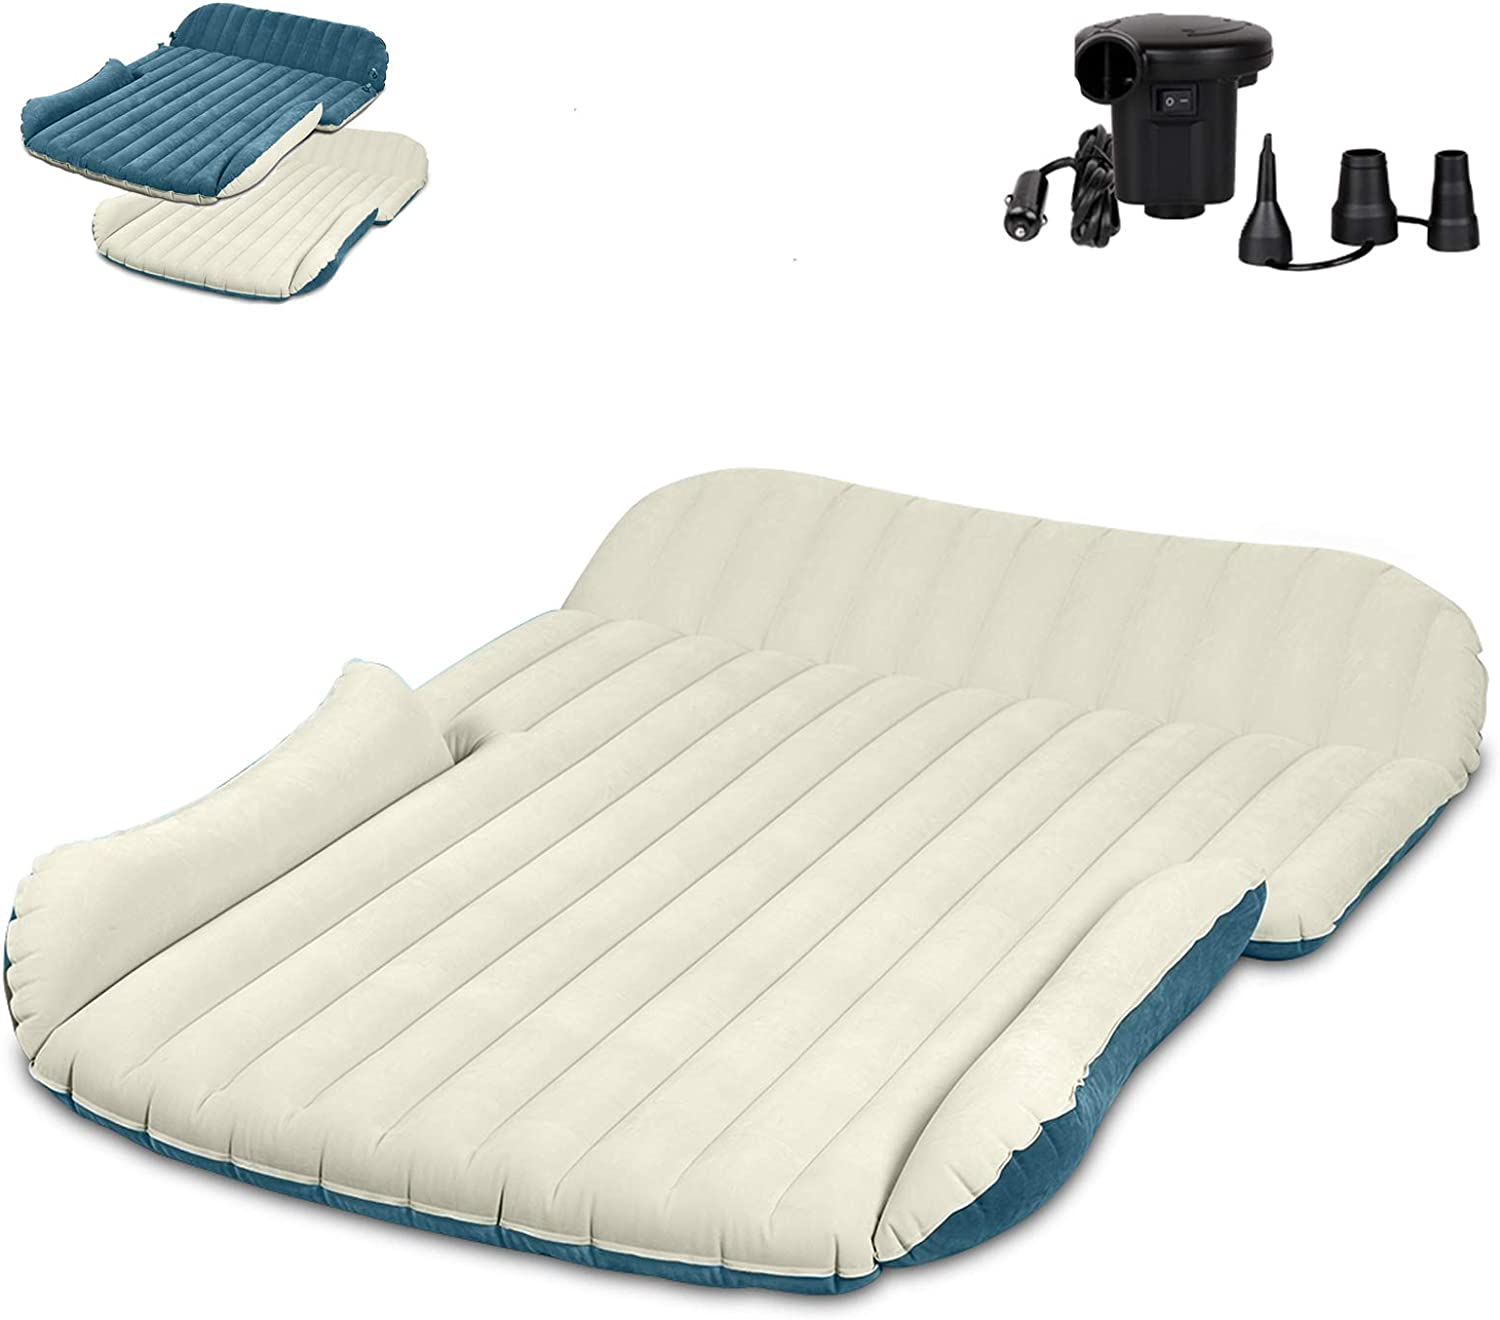 WEY&FLY SUV Air Mattress- Thickened and Double-Sided